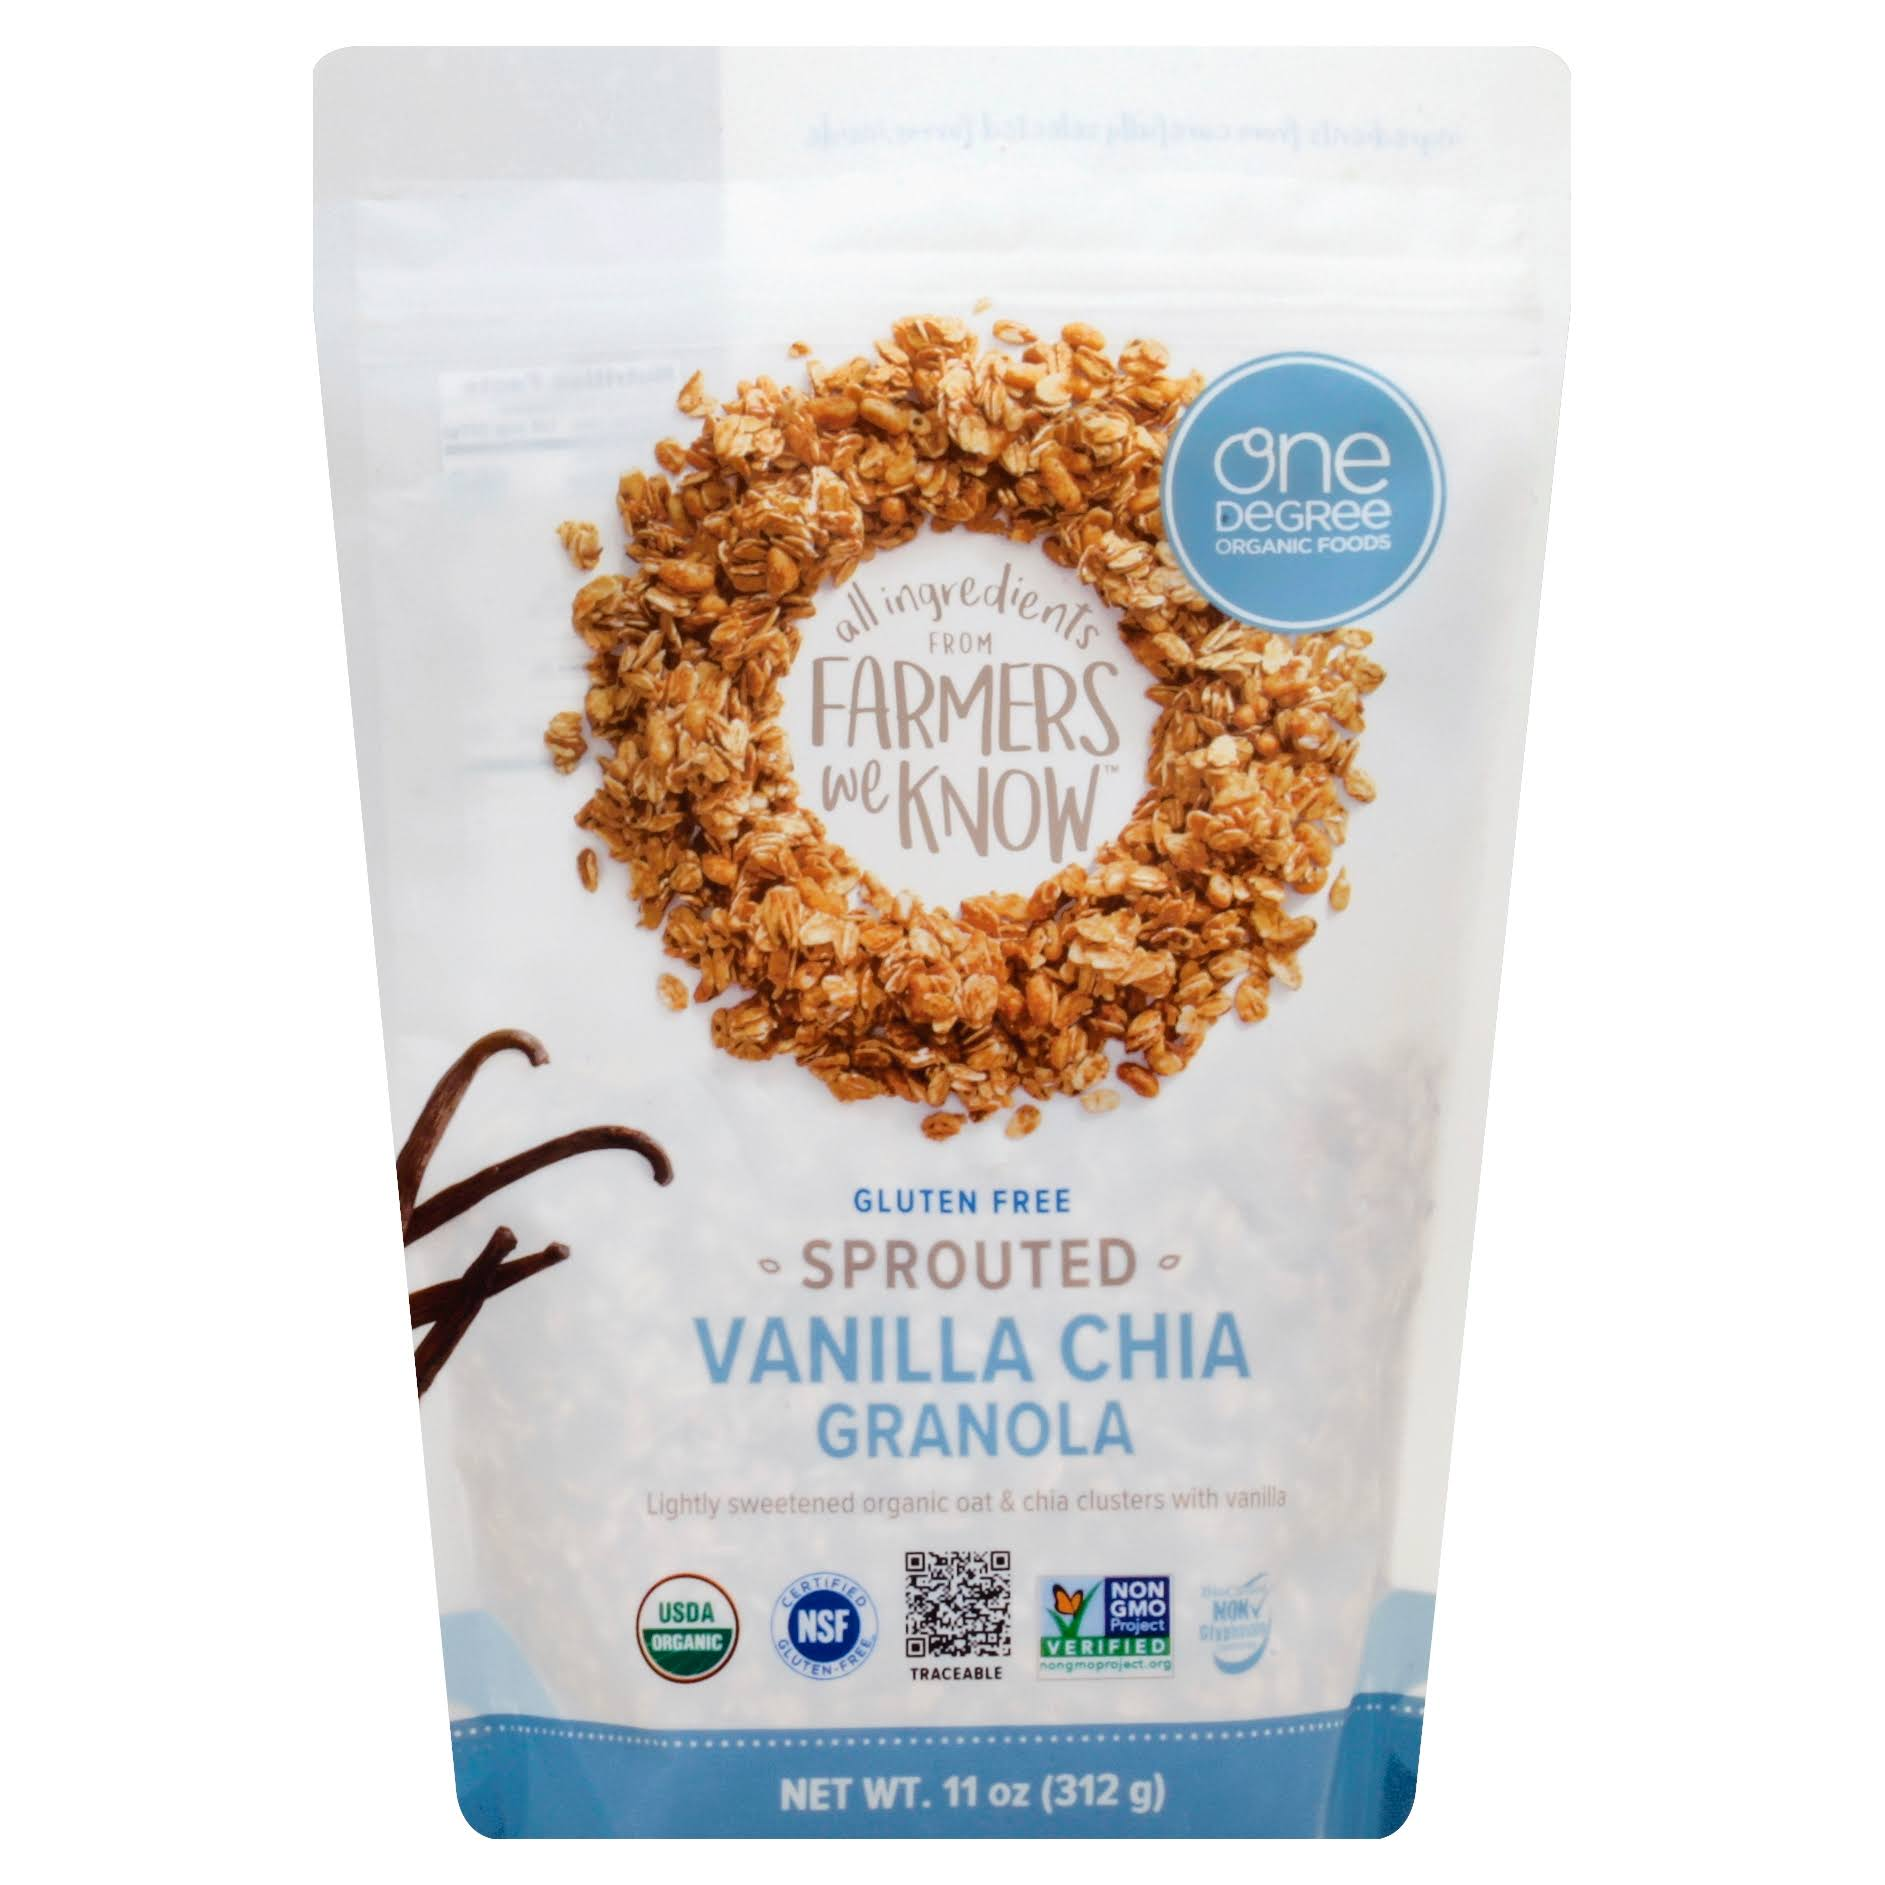 One Degree Sprouted Oat Granola - Vanilla Chia, 11oz